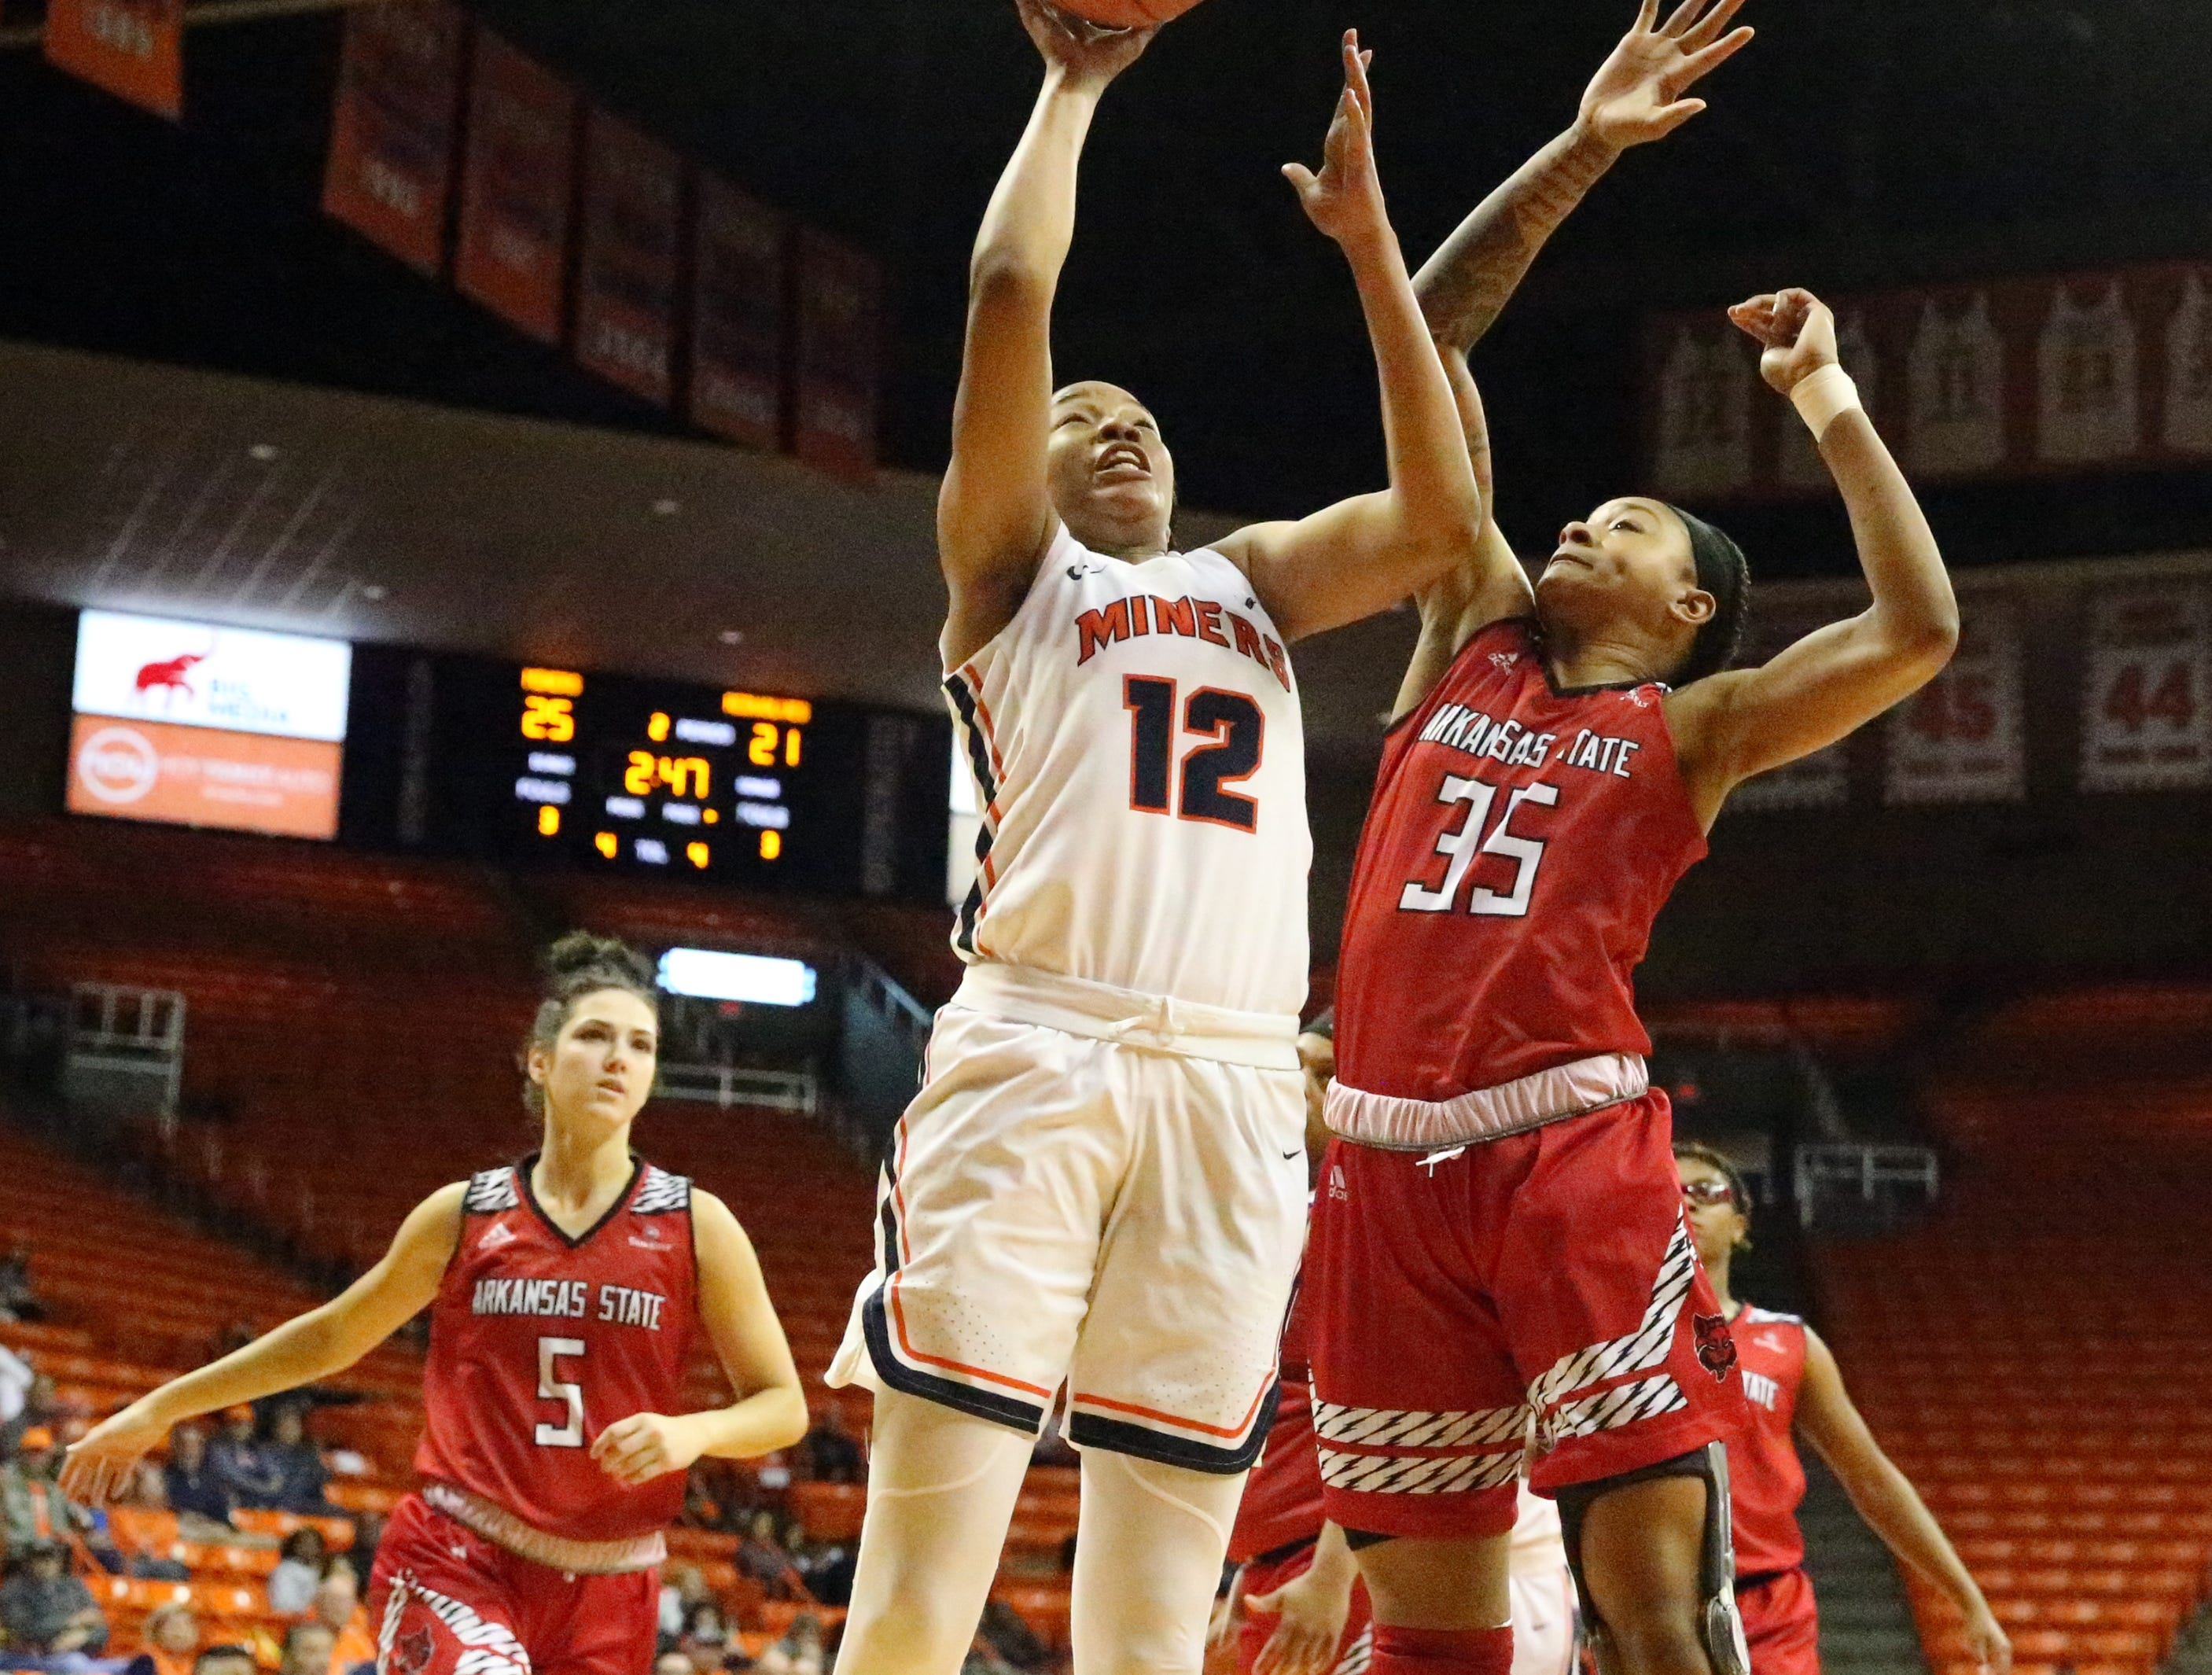 Ariona Gill, 12, of UTEP drives to the basket for two against Peyton Martin, 35, of Arkansas State on Saturday in the Don Haskins Center.